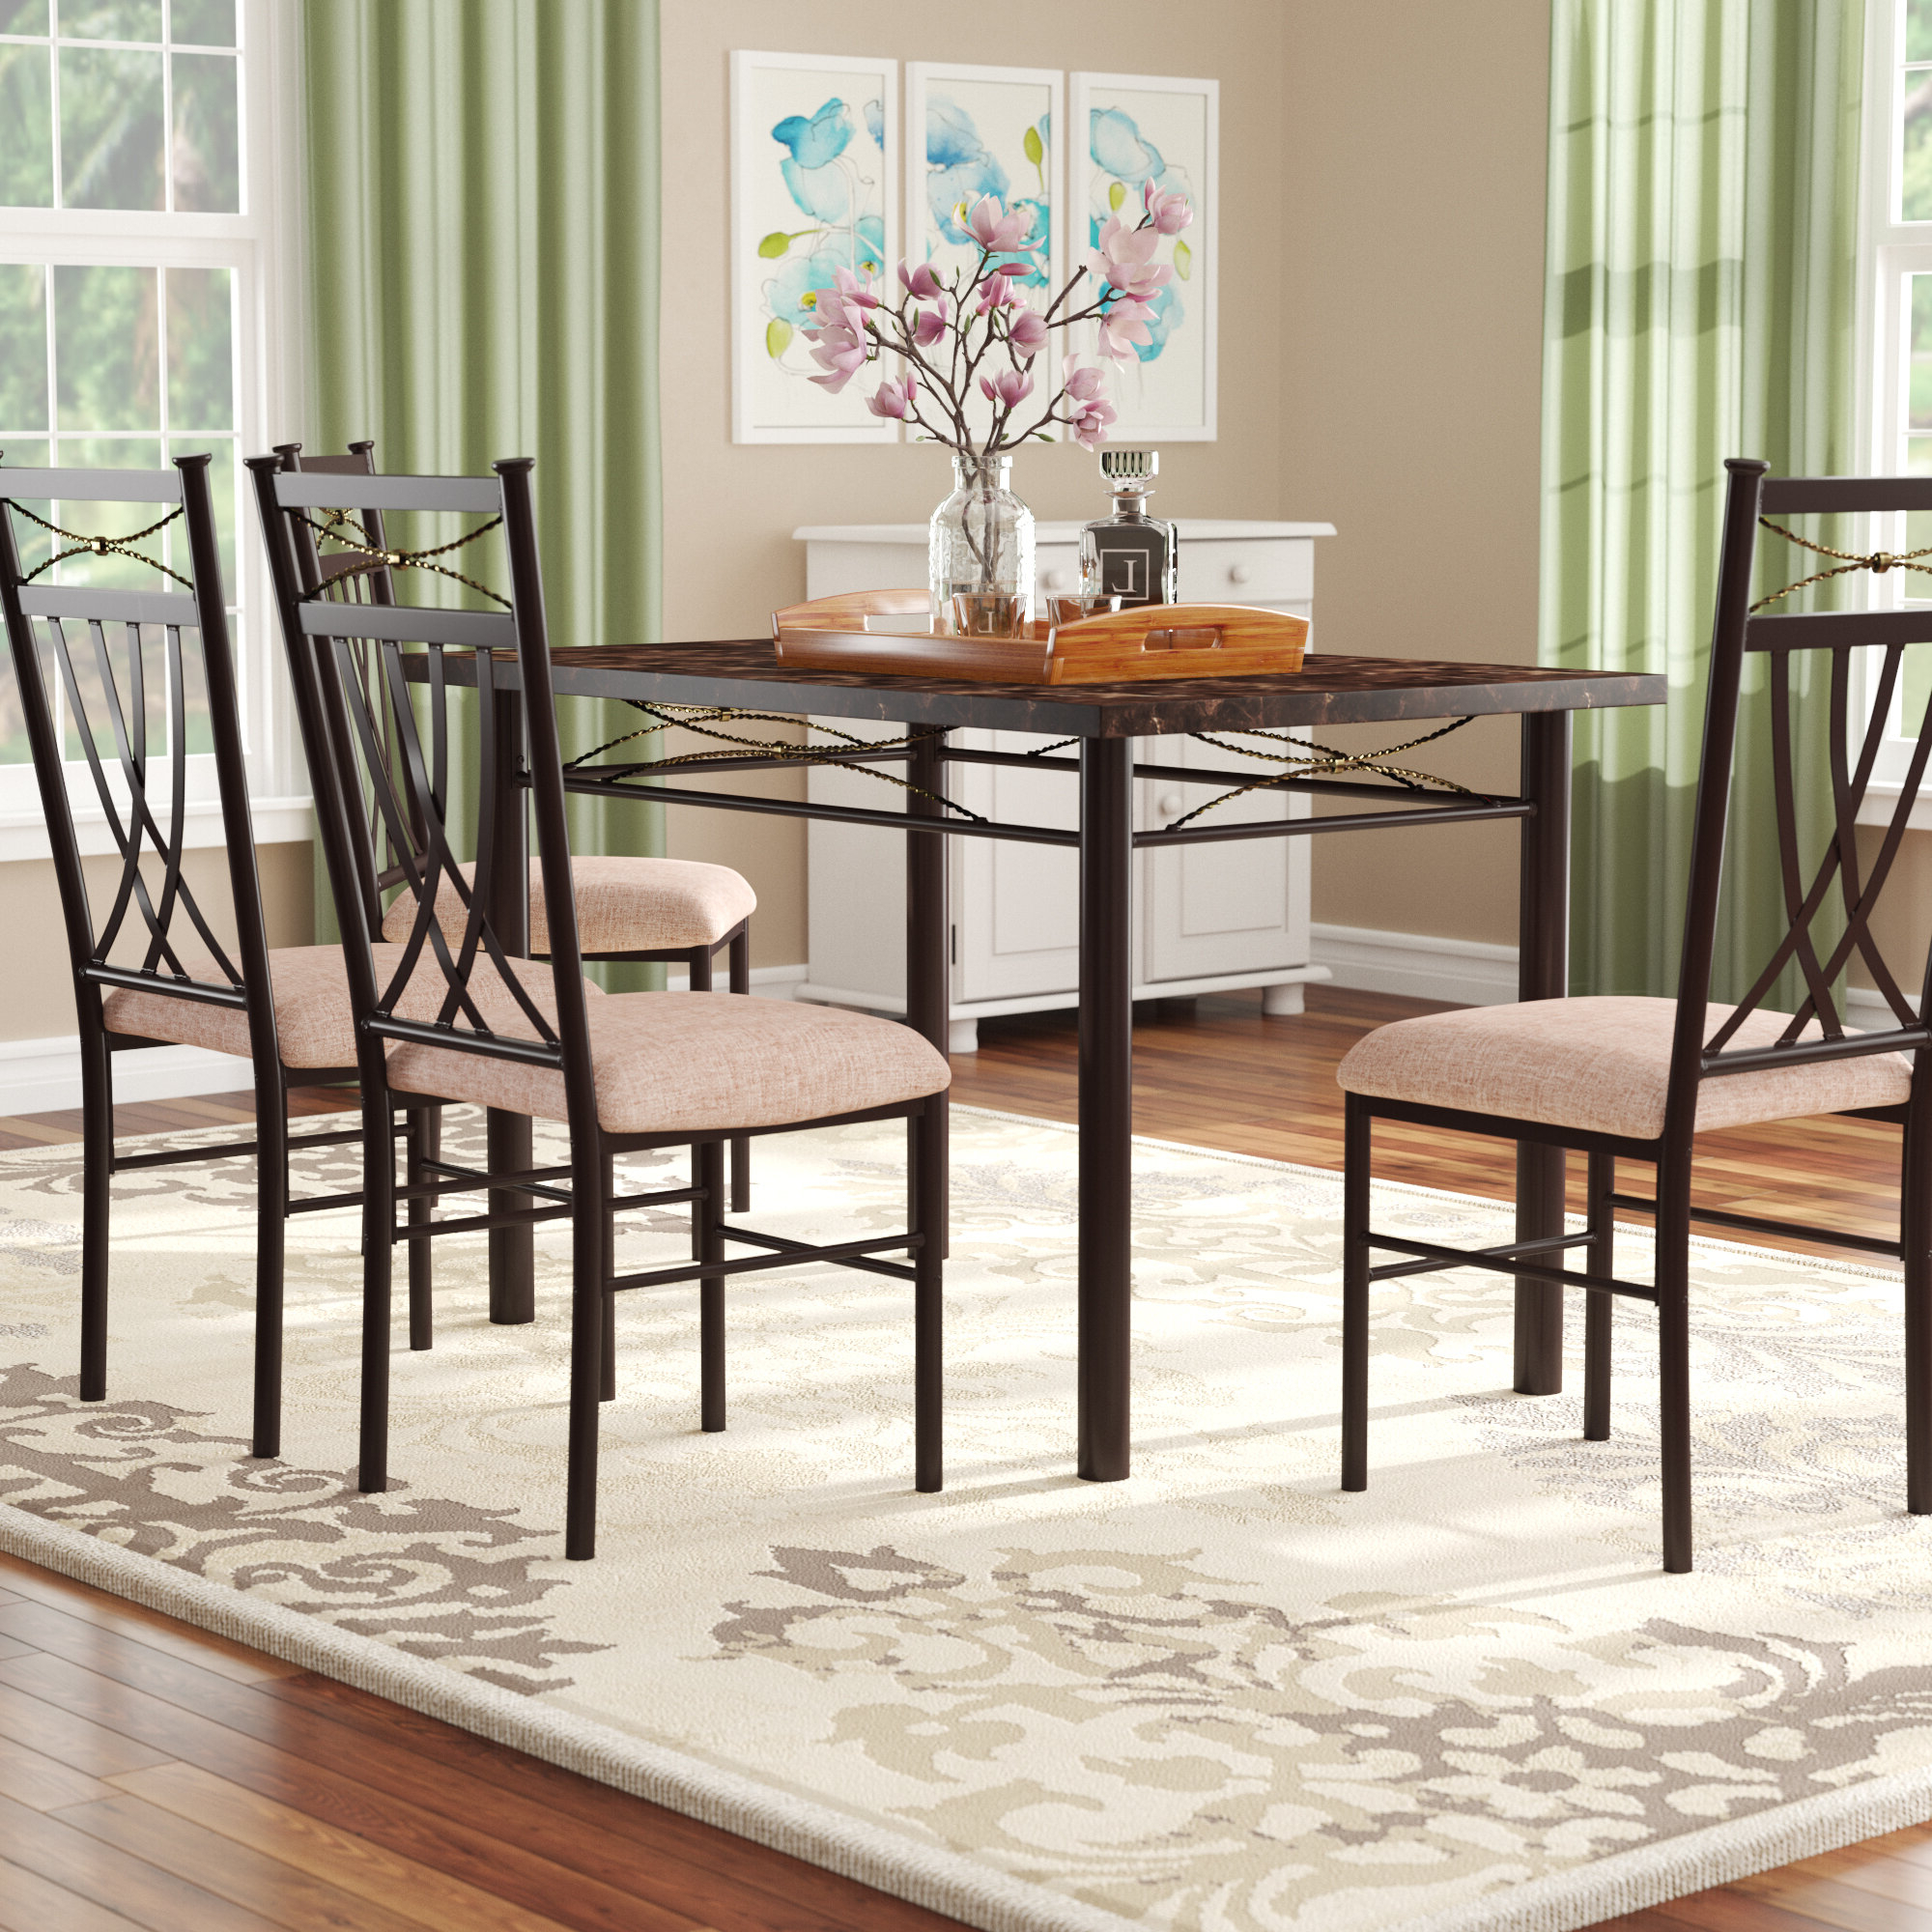 Calla 5 Piece Dining Sets Intended For Newest Branden 5 Piece Dining Set (View 7 of 20)